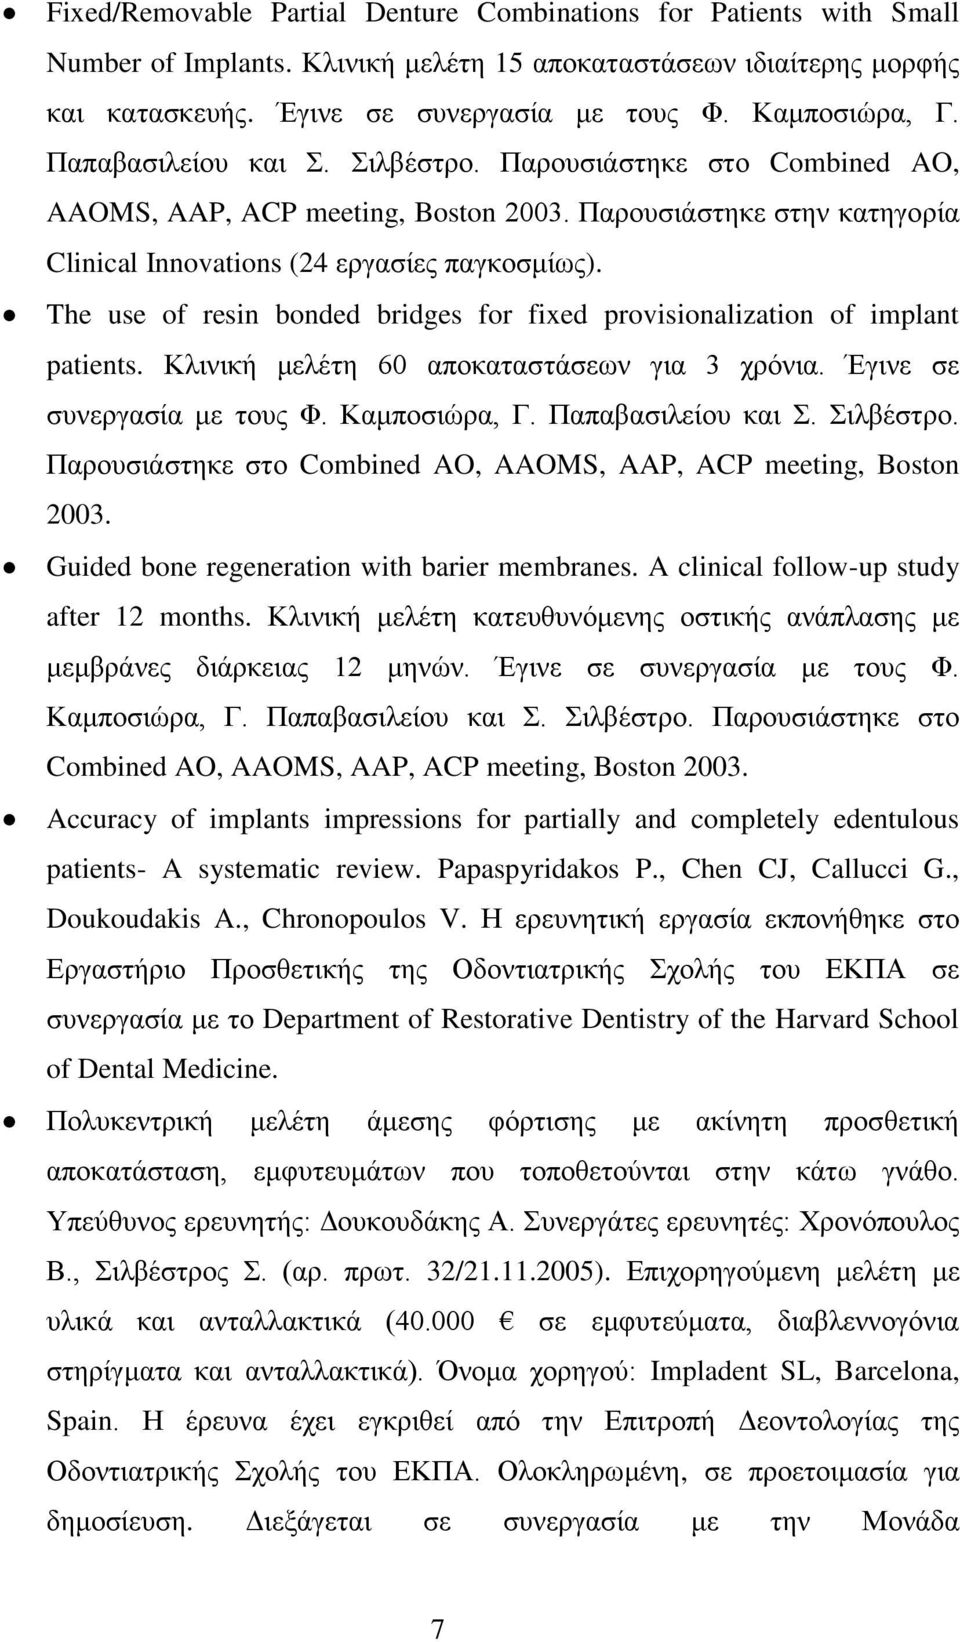 The use of resin bonded bridges for fixed provisionalization of implant patients. Κλινική μελέτη 60 αποκαταστάσεων για 3 χρόνια. Έγινε σε συνεργασία με τους Φ. Καμποσιώρα, Γ. Παπαβασιλείου και Σ.